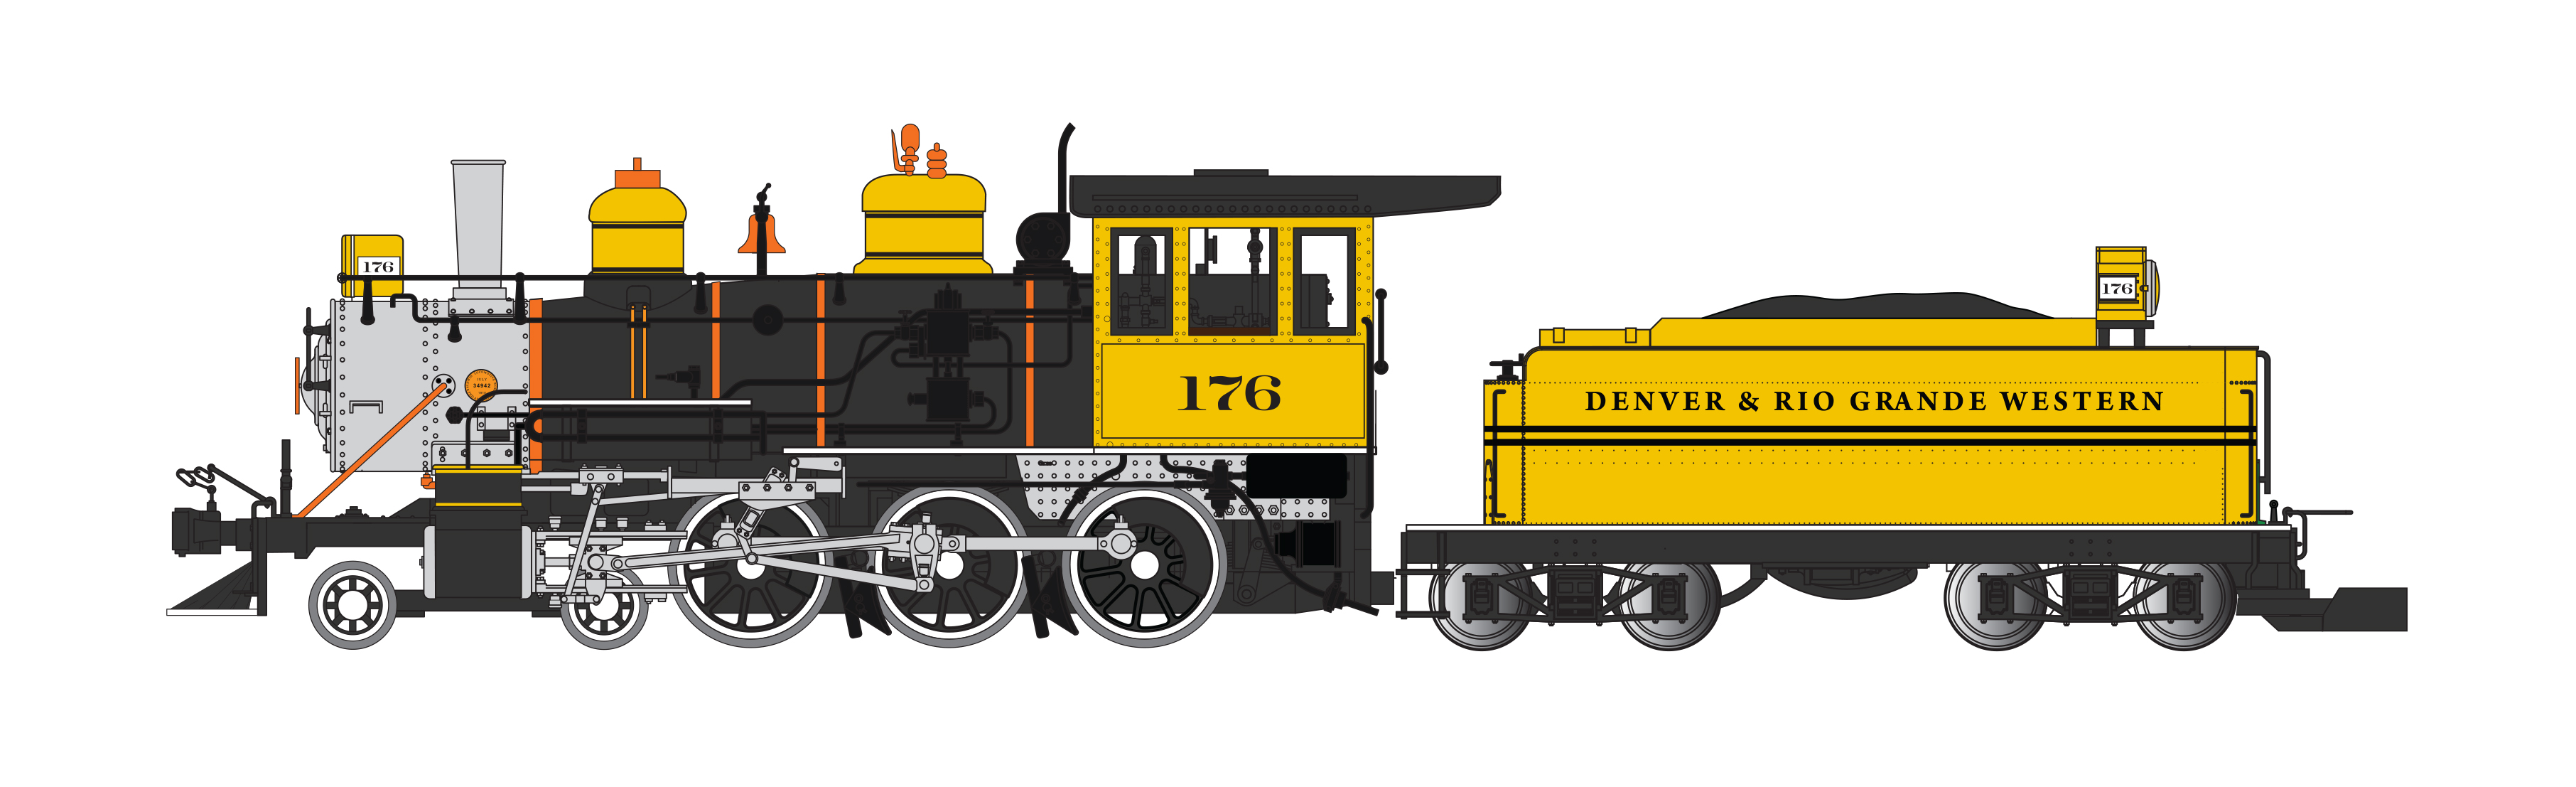 D&RGW™ - Bumblebee - 4-6-0 (DCC & SOUND READY) [91803